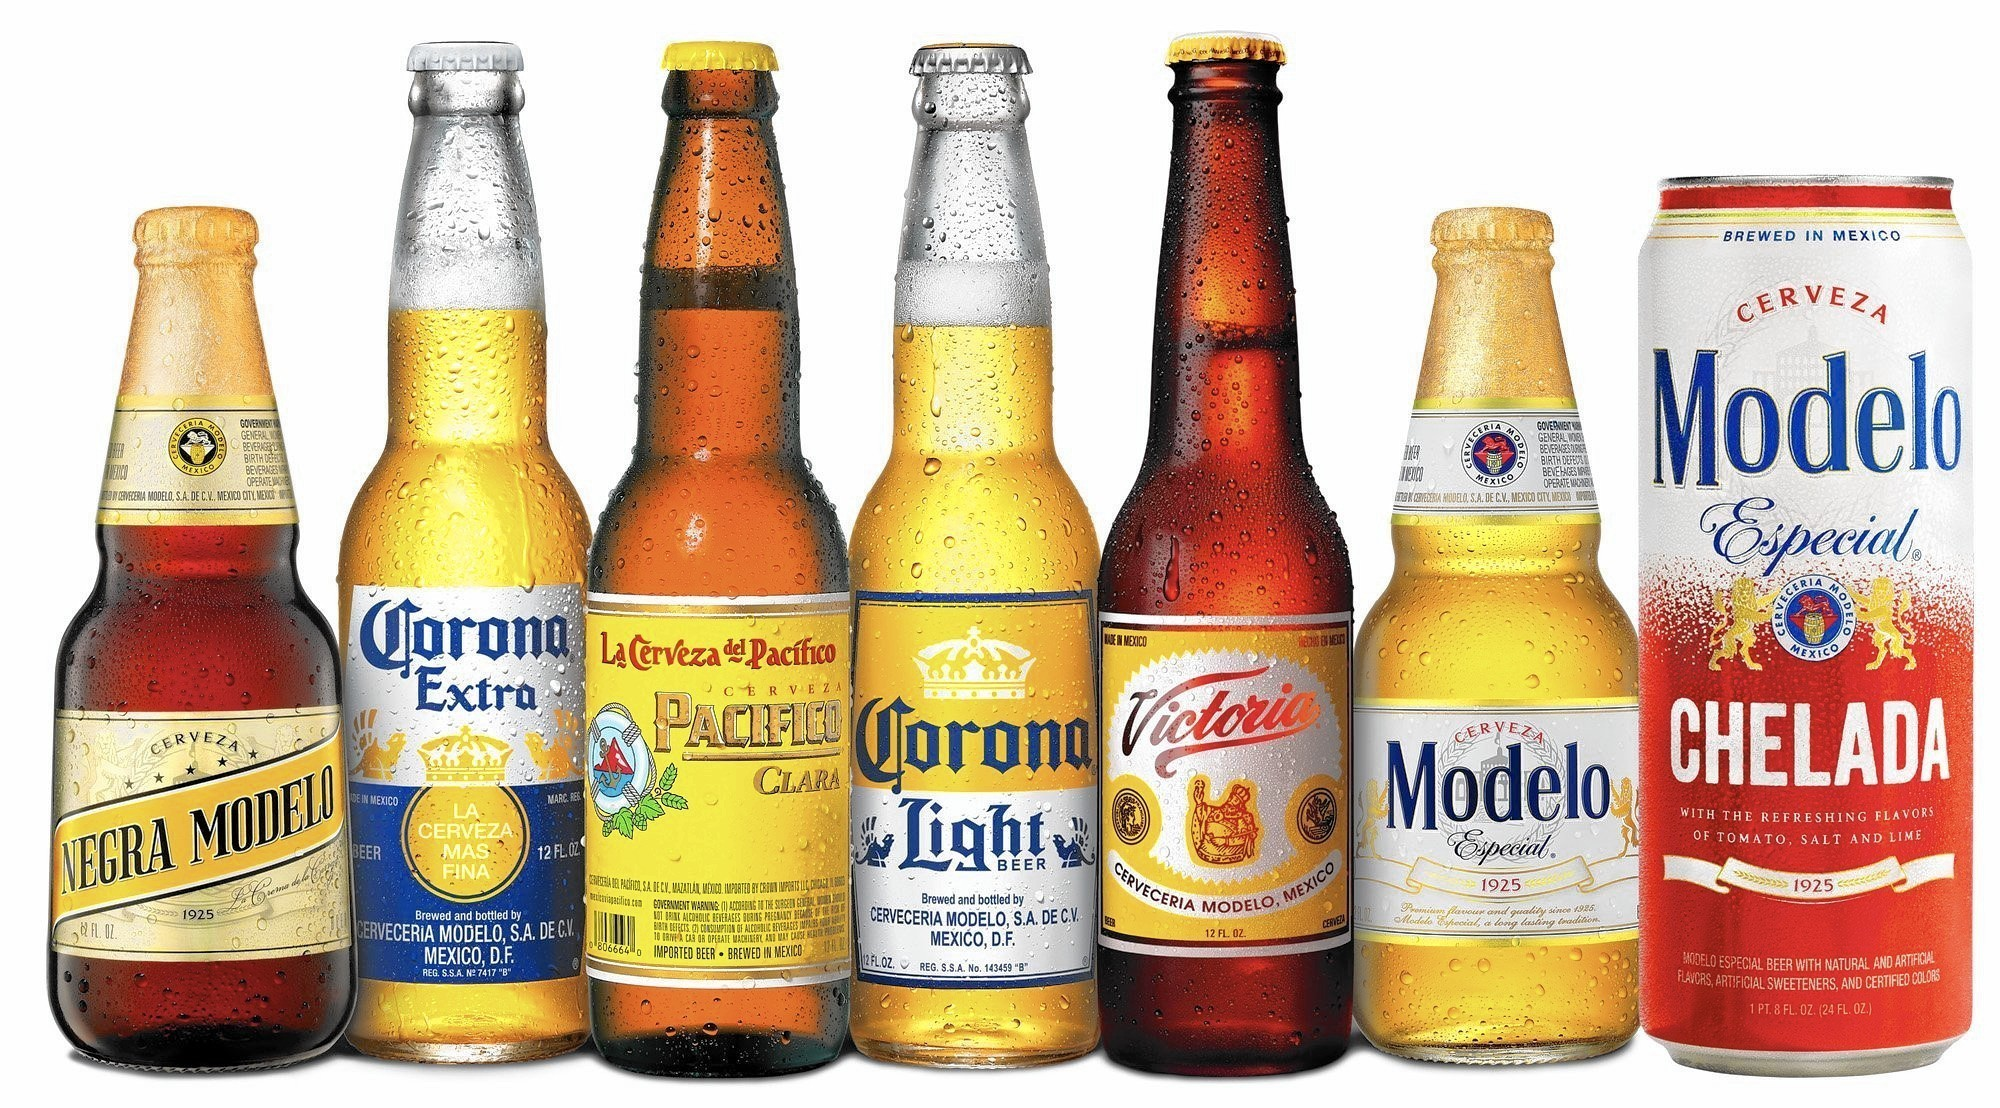 Corono the mexican beers marketing